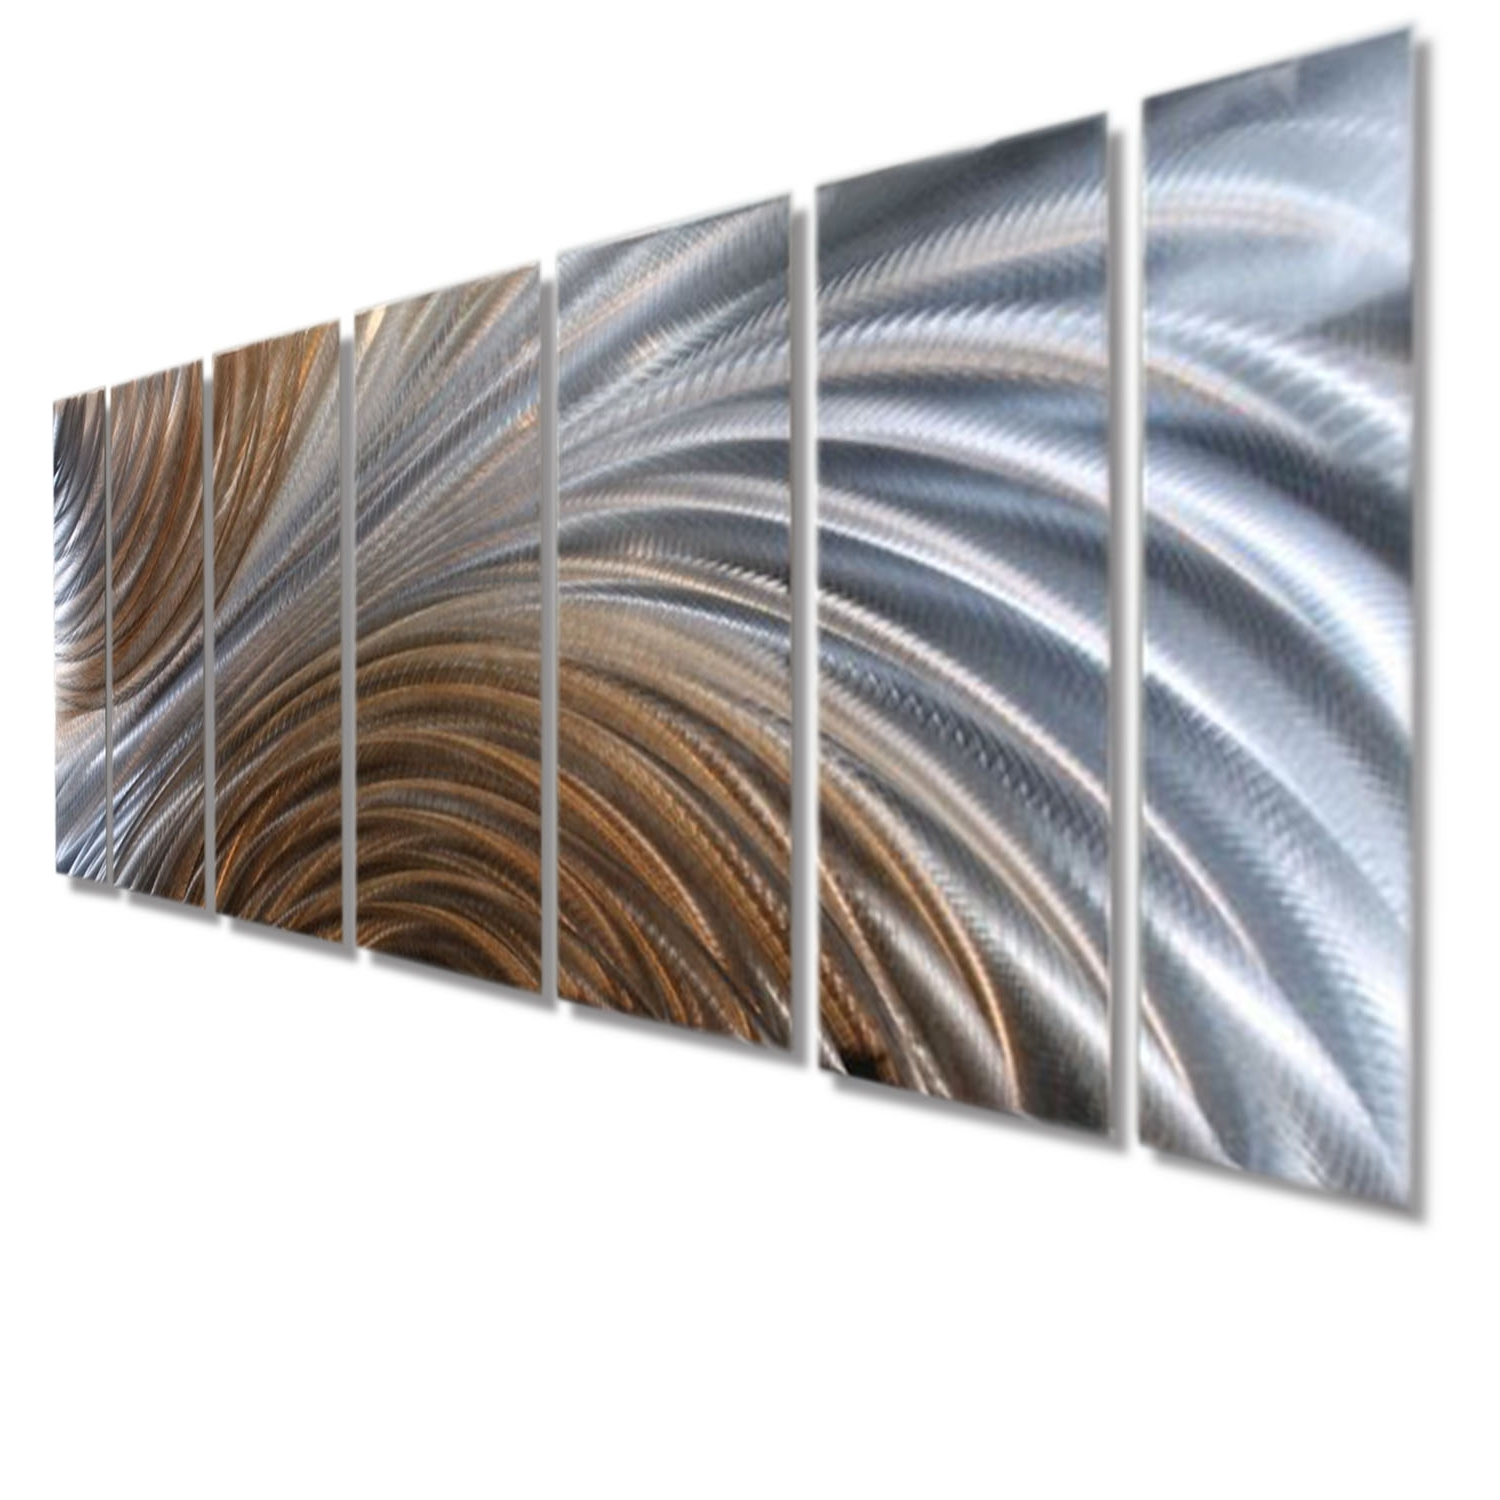 Latest Amber Ascension Silver & Copper Abstract Metal Wall Artjon Regarding Large Abstract Metal Wall Art (View 11 of 15)